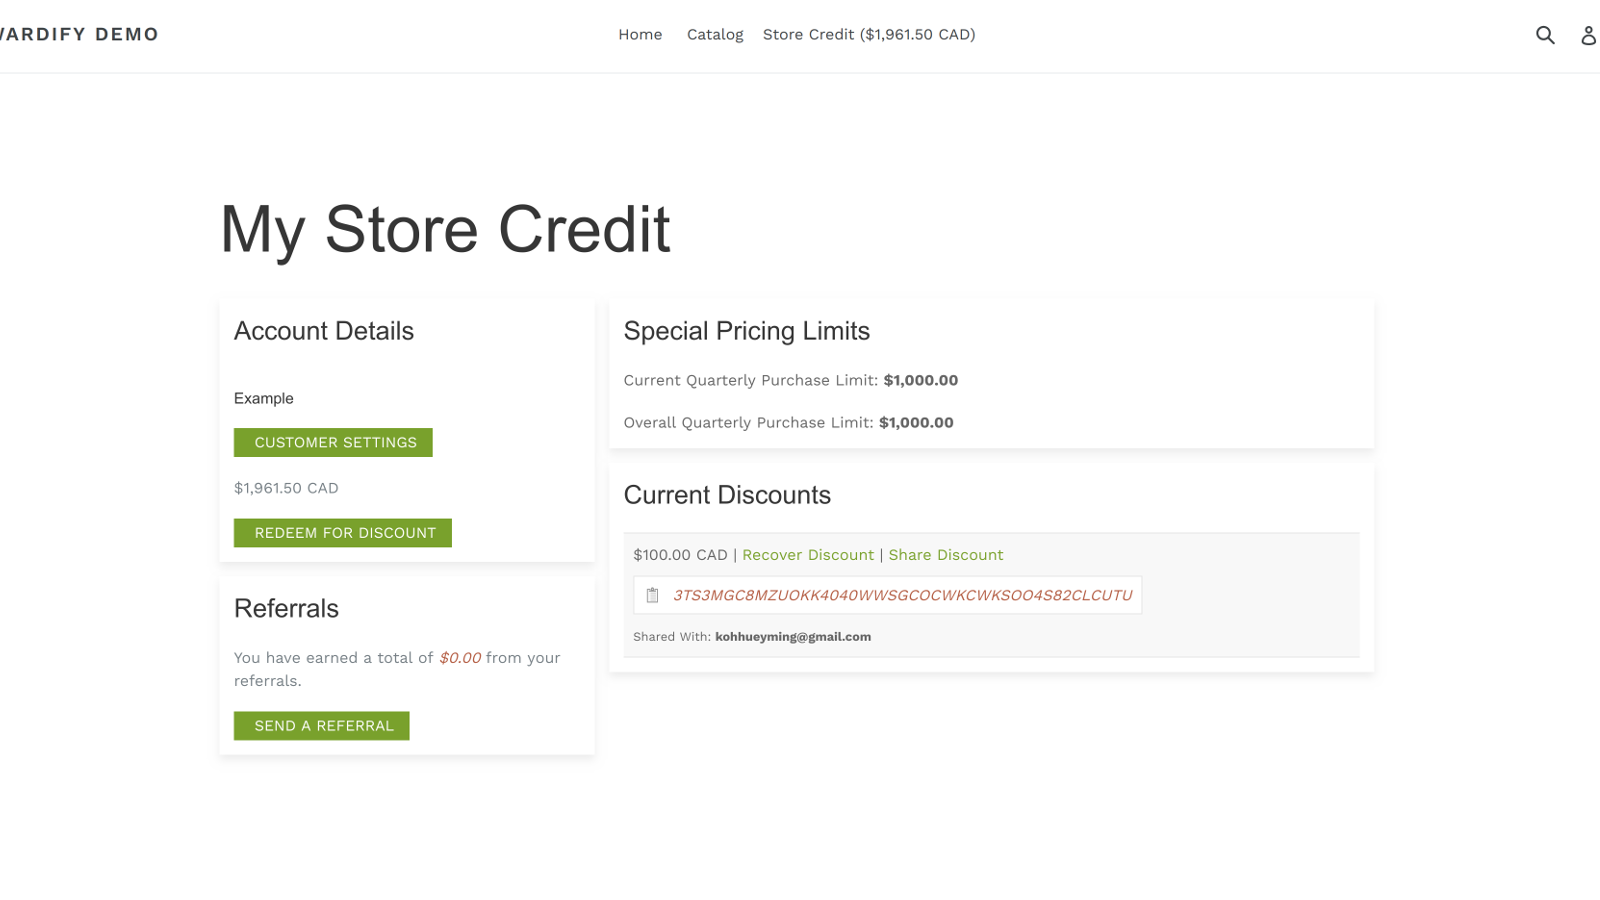 My Store Credit Page